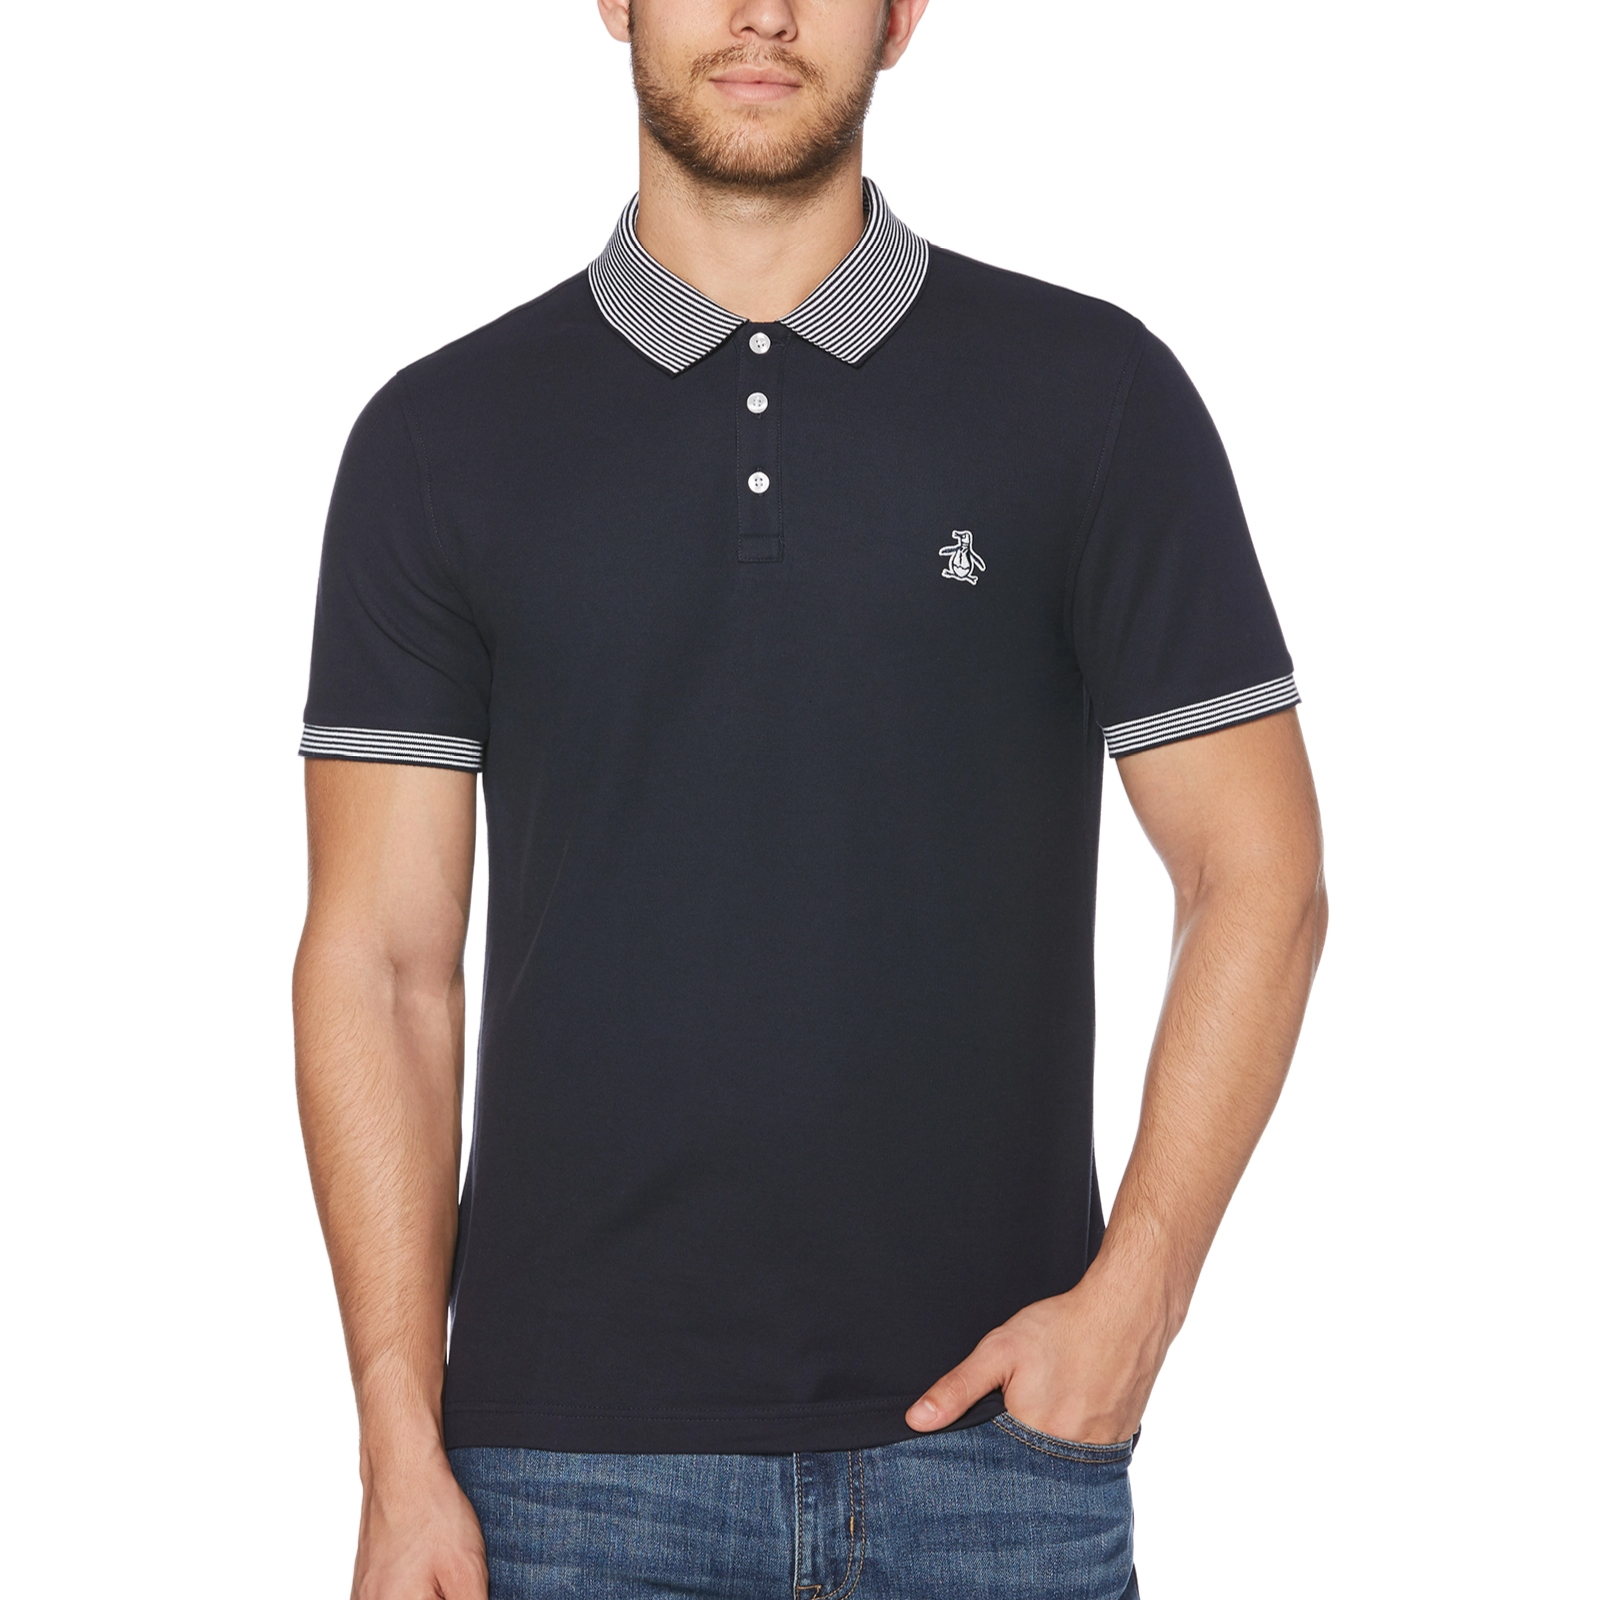 463a9fff2 Sentinel Original Penguin Opks9130 Short Sleeve Collared Polo Shirt